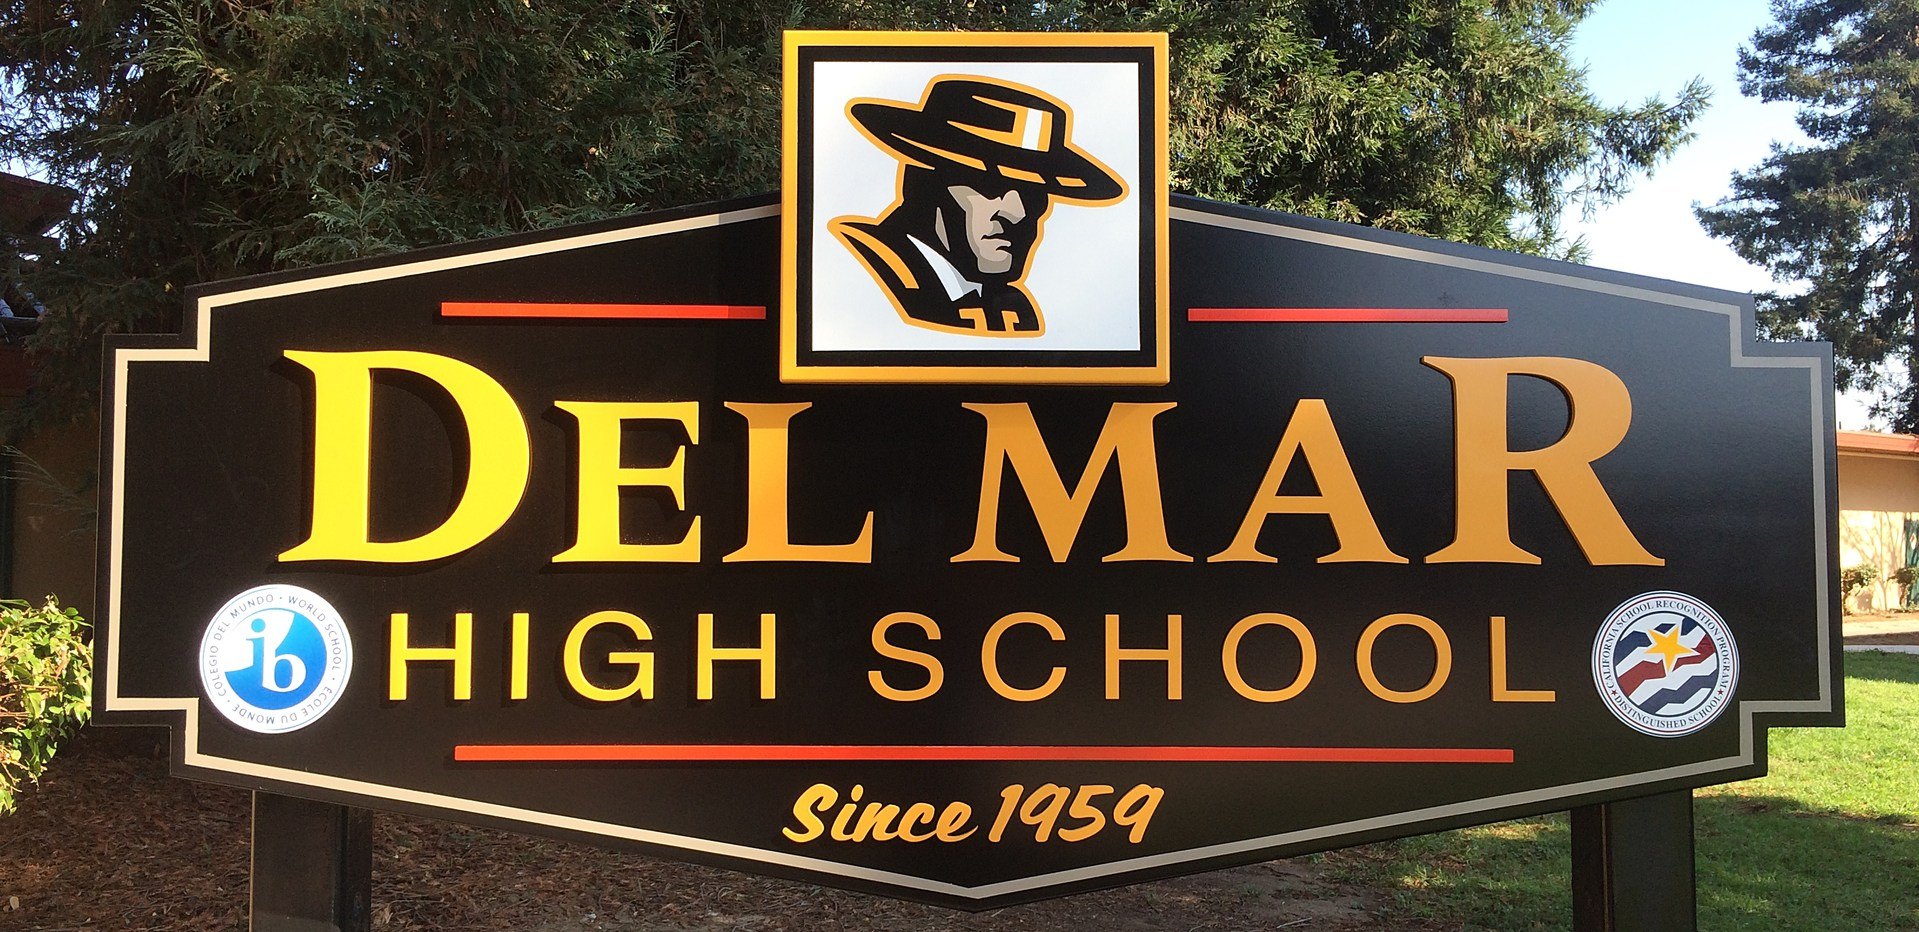 Image of Del Mar High School sign at front of school